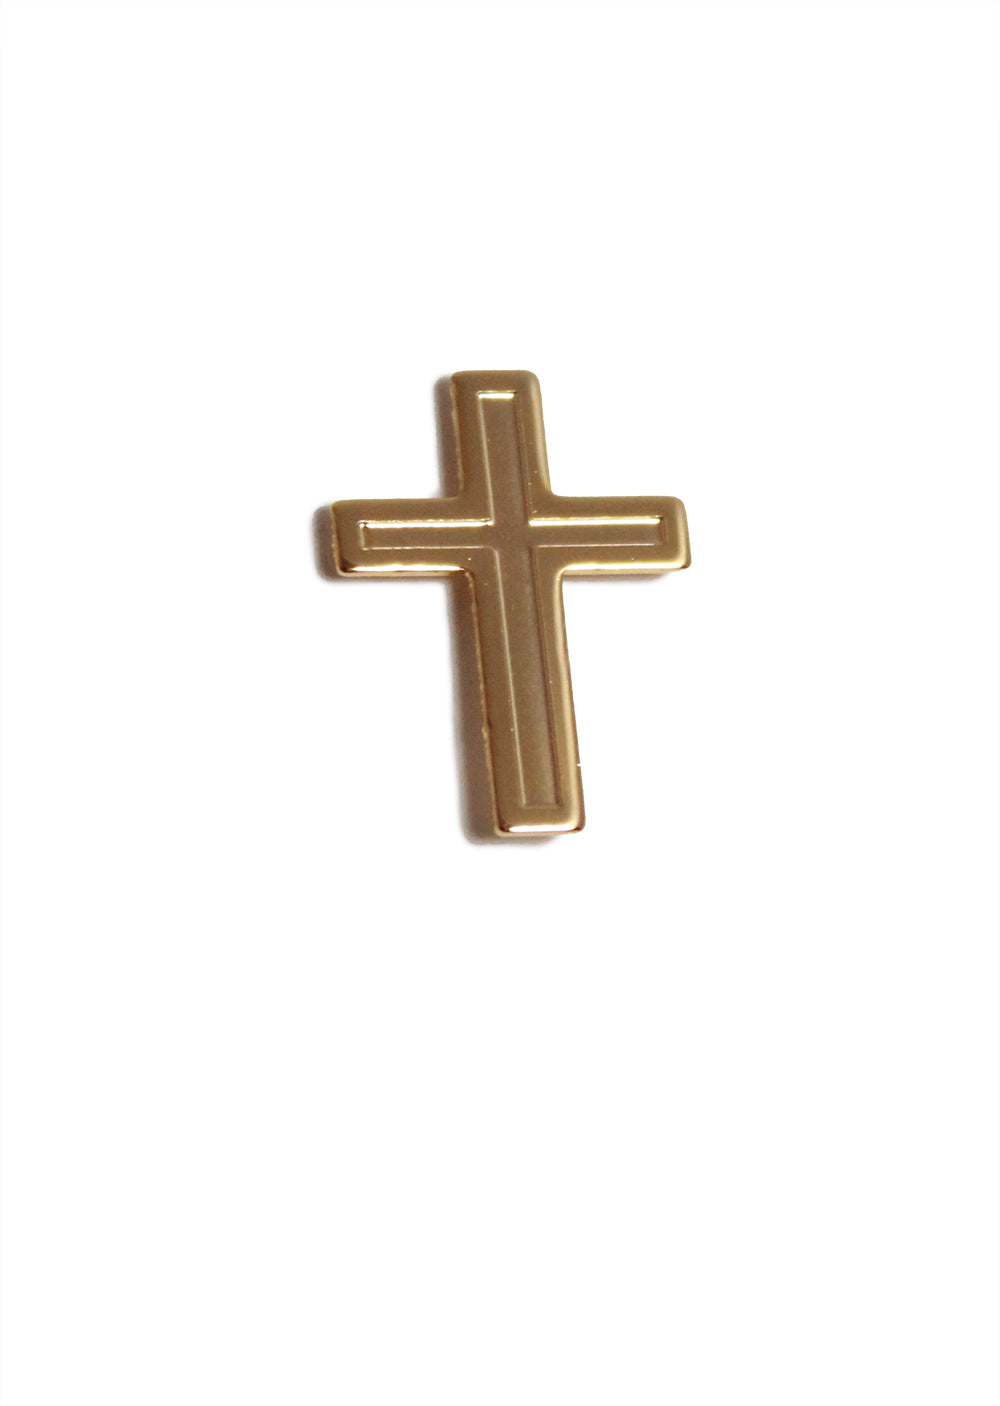 Gold lapel cross pin